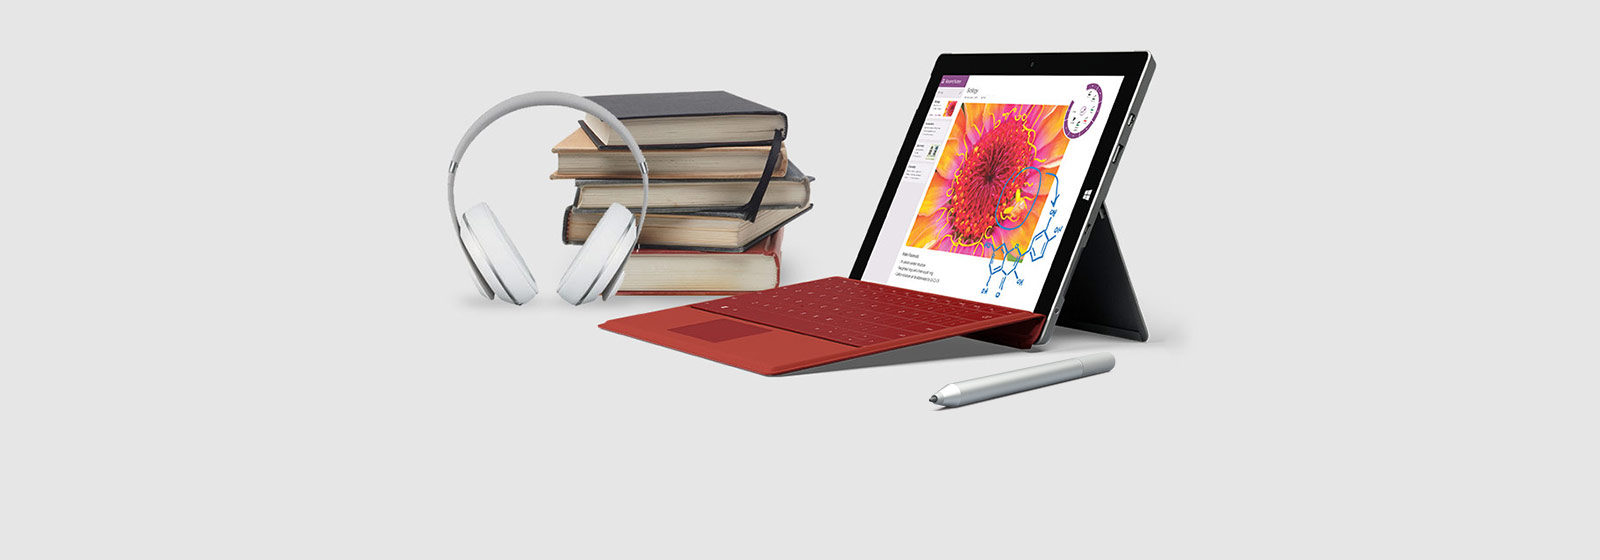 Limited-time: Surface 3 comes with a year of Office 365 Personal.